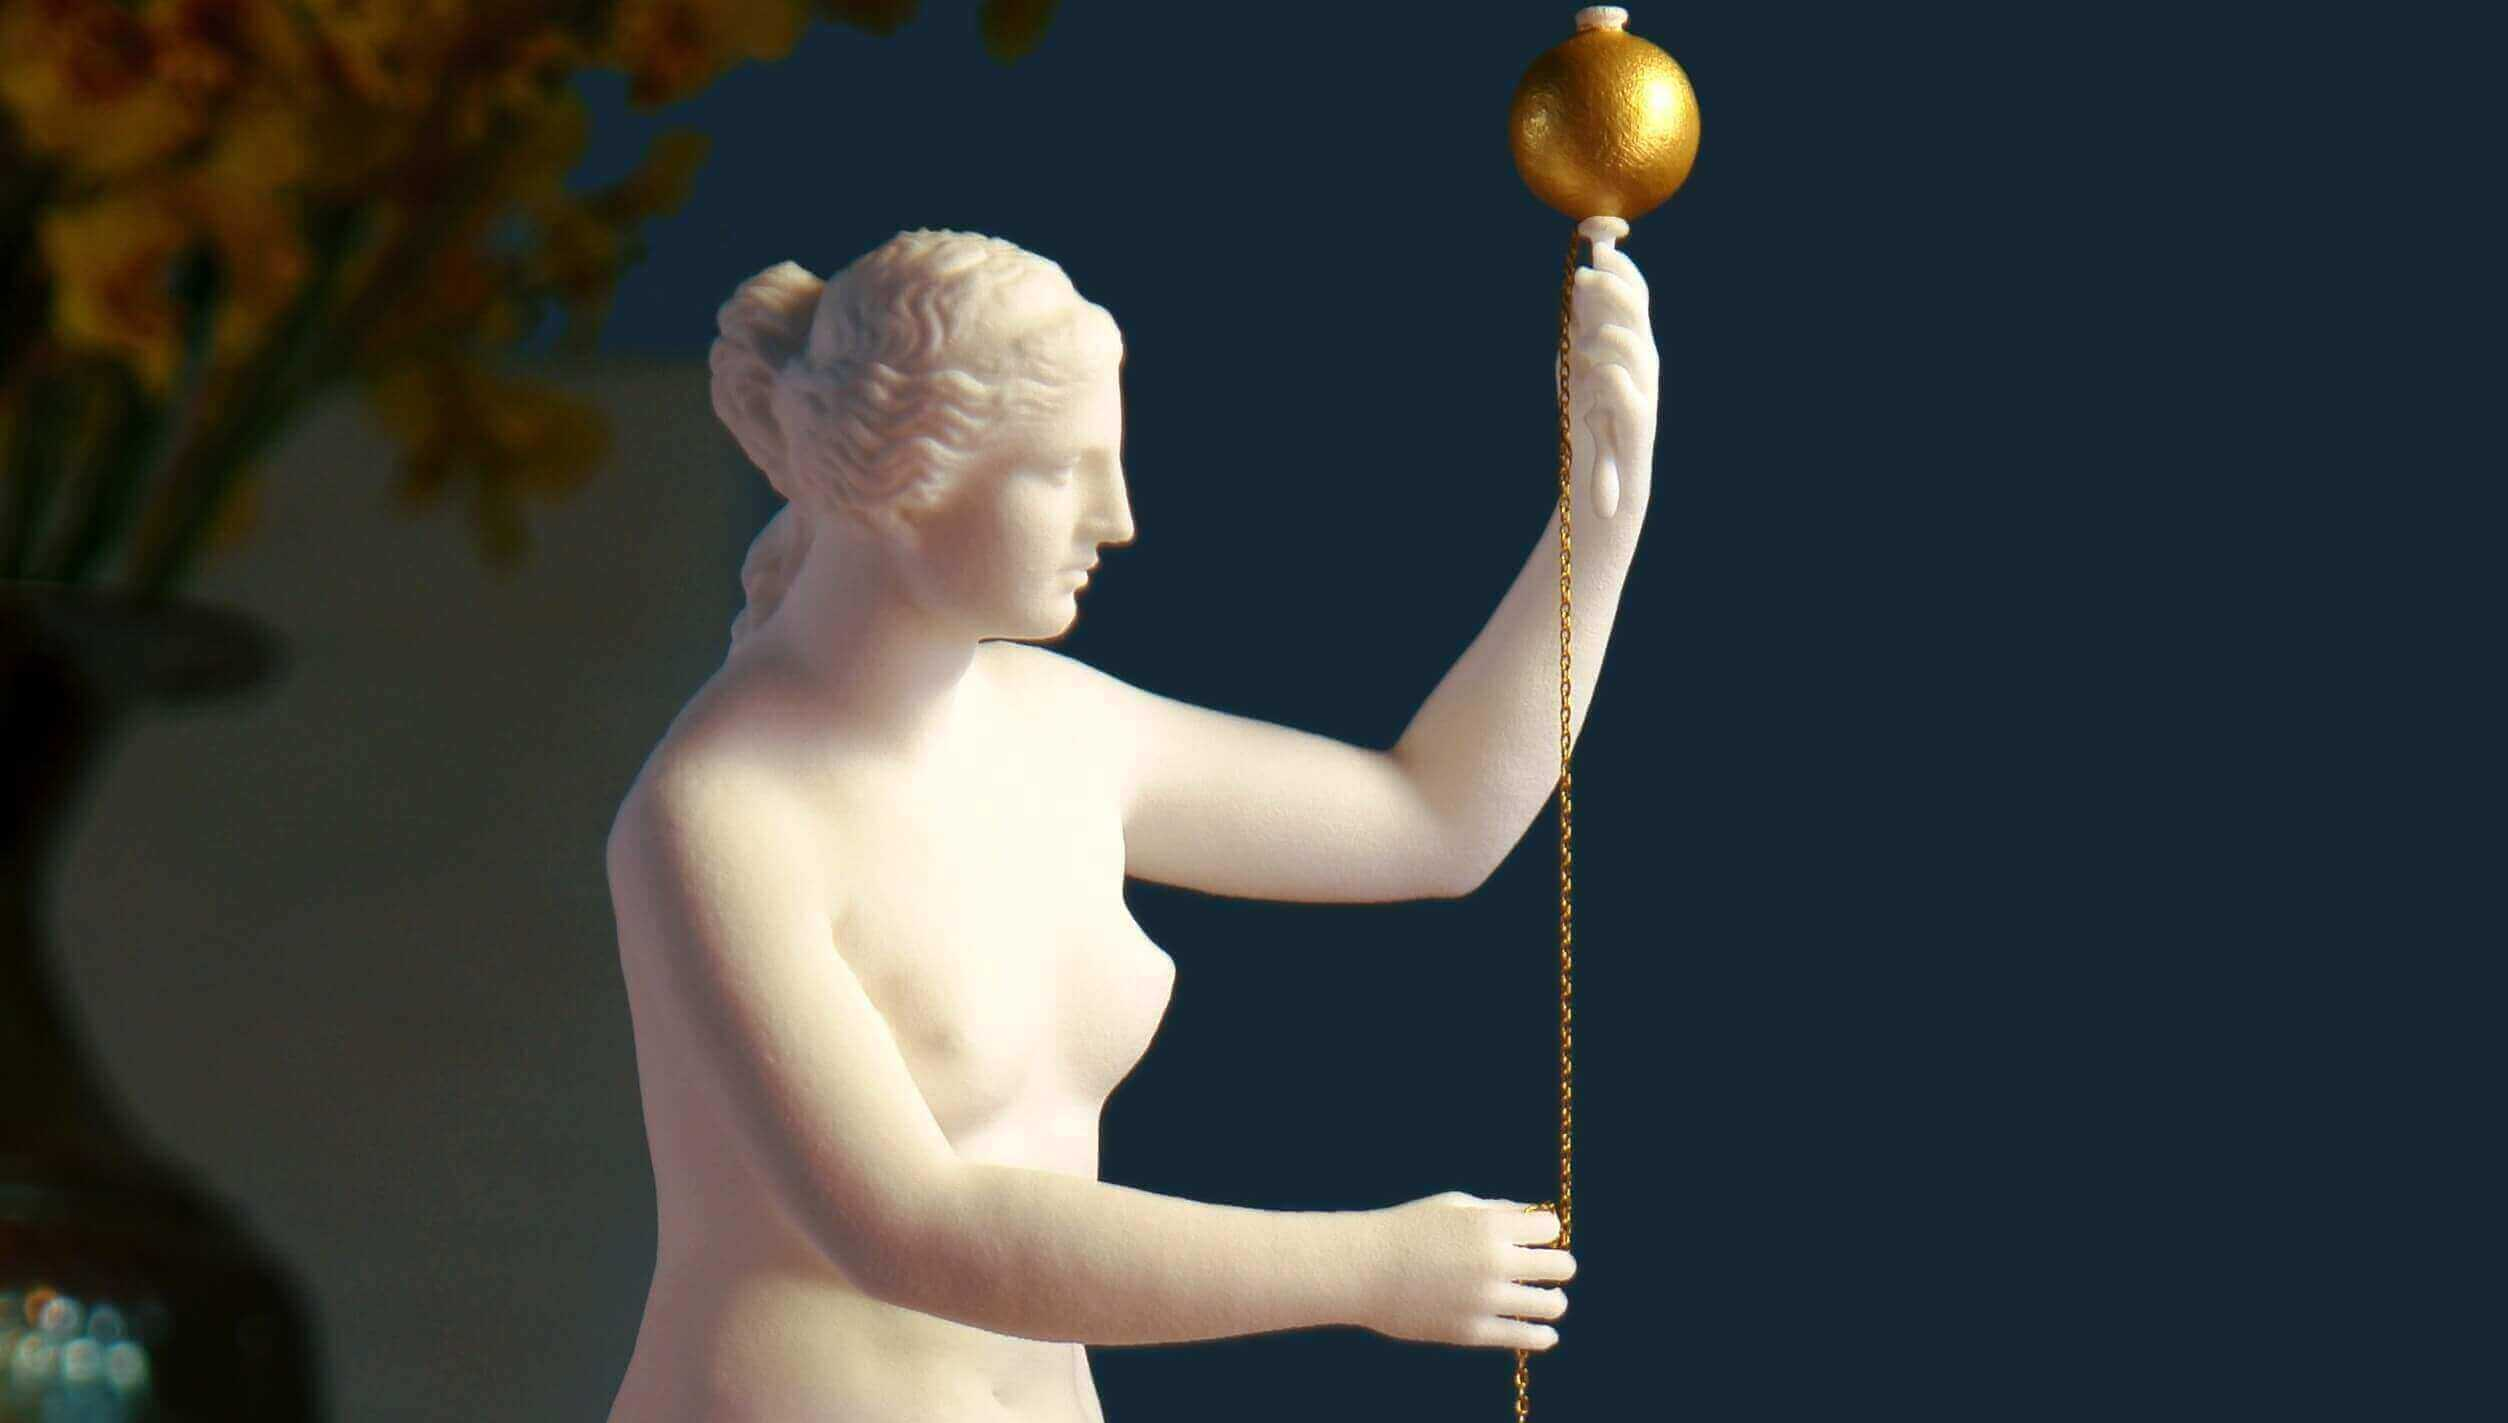 3D Printing May Have Solved The Mystery of Venus de Milo | All3DP